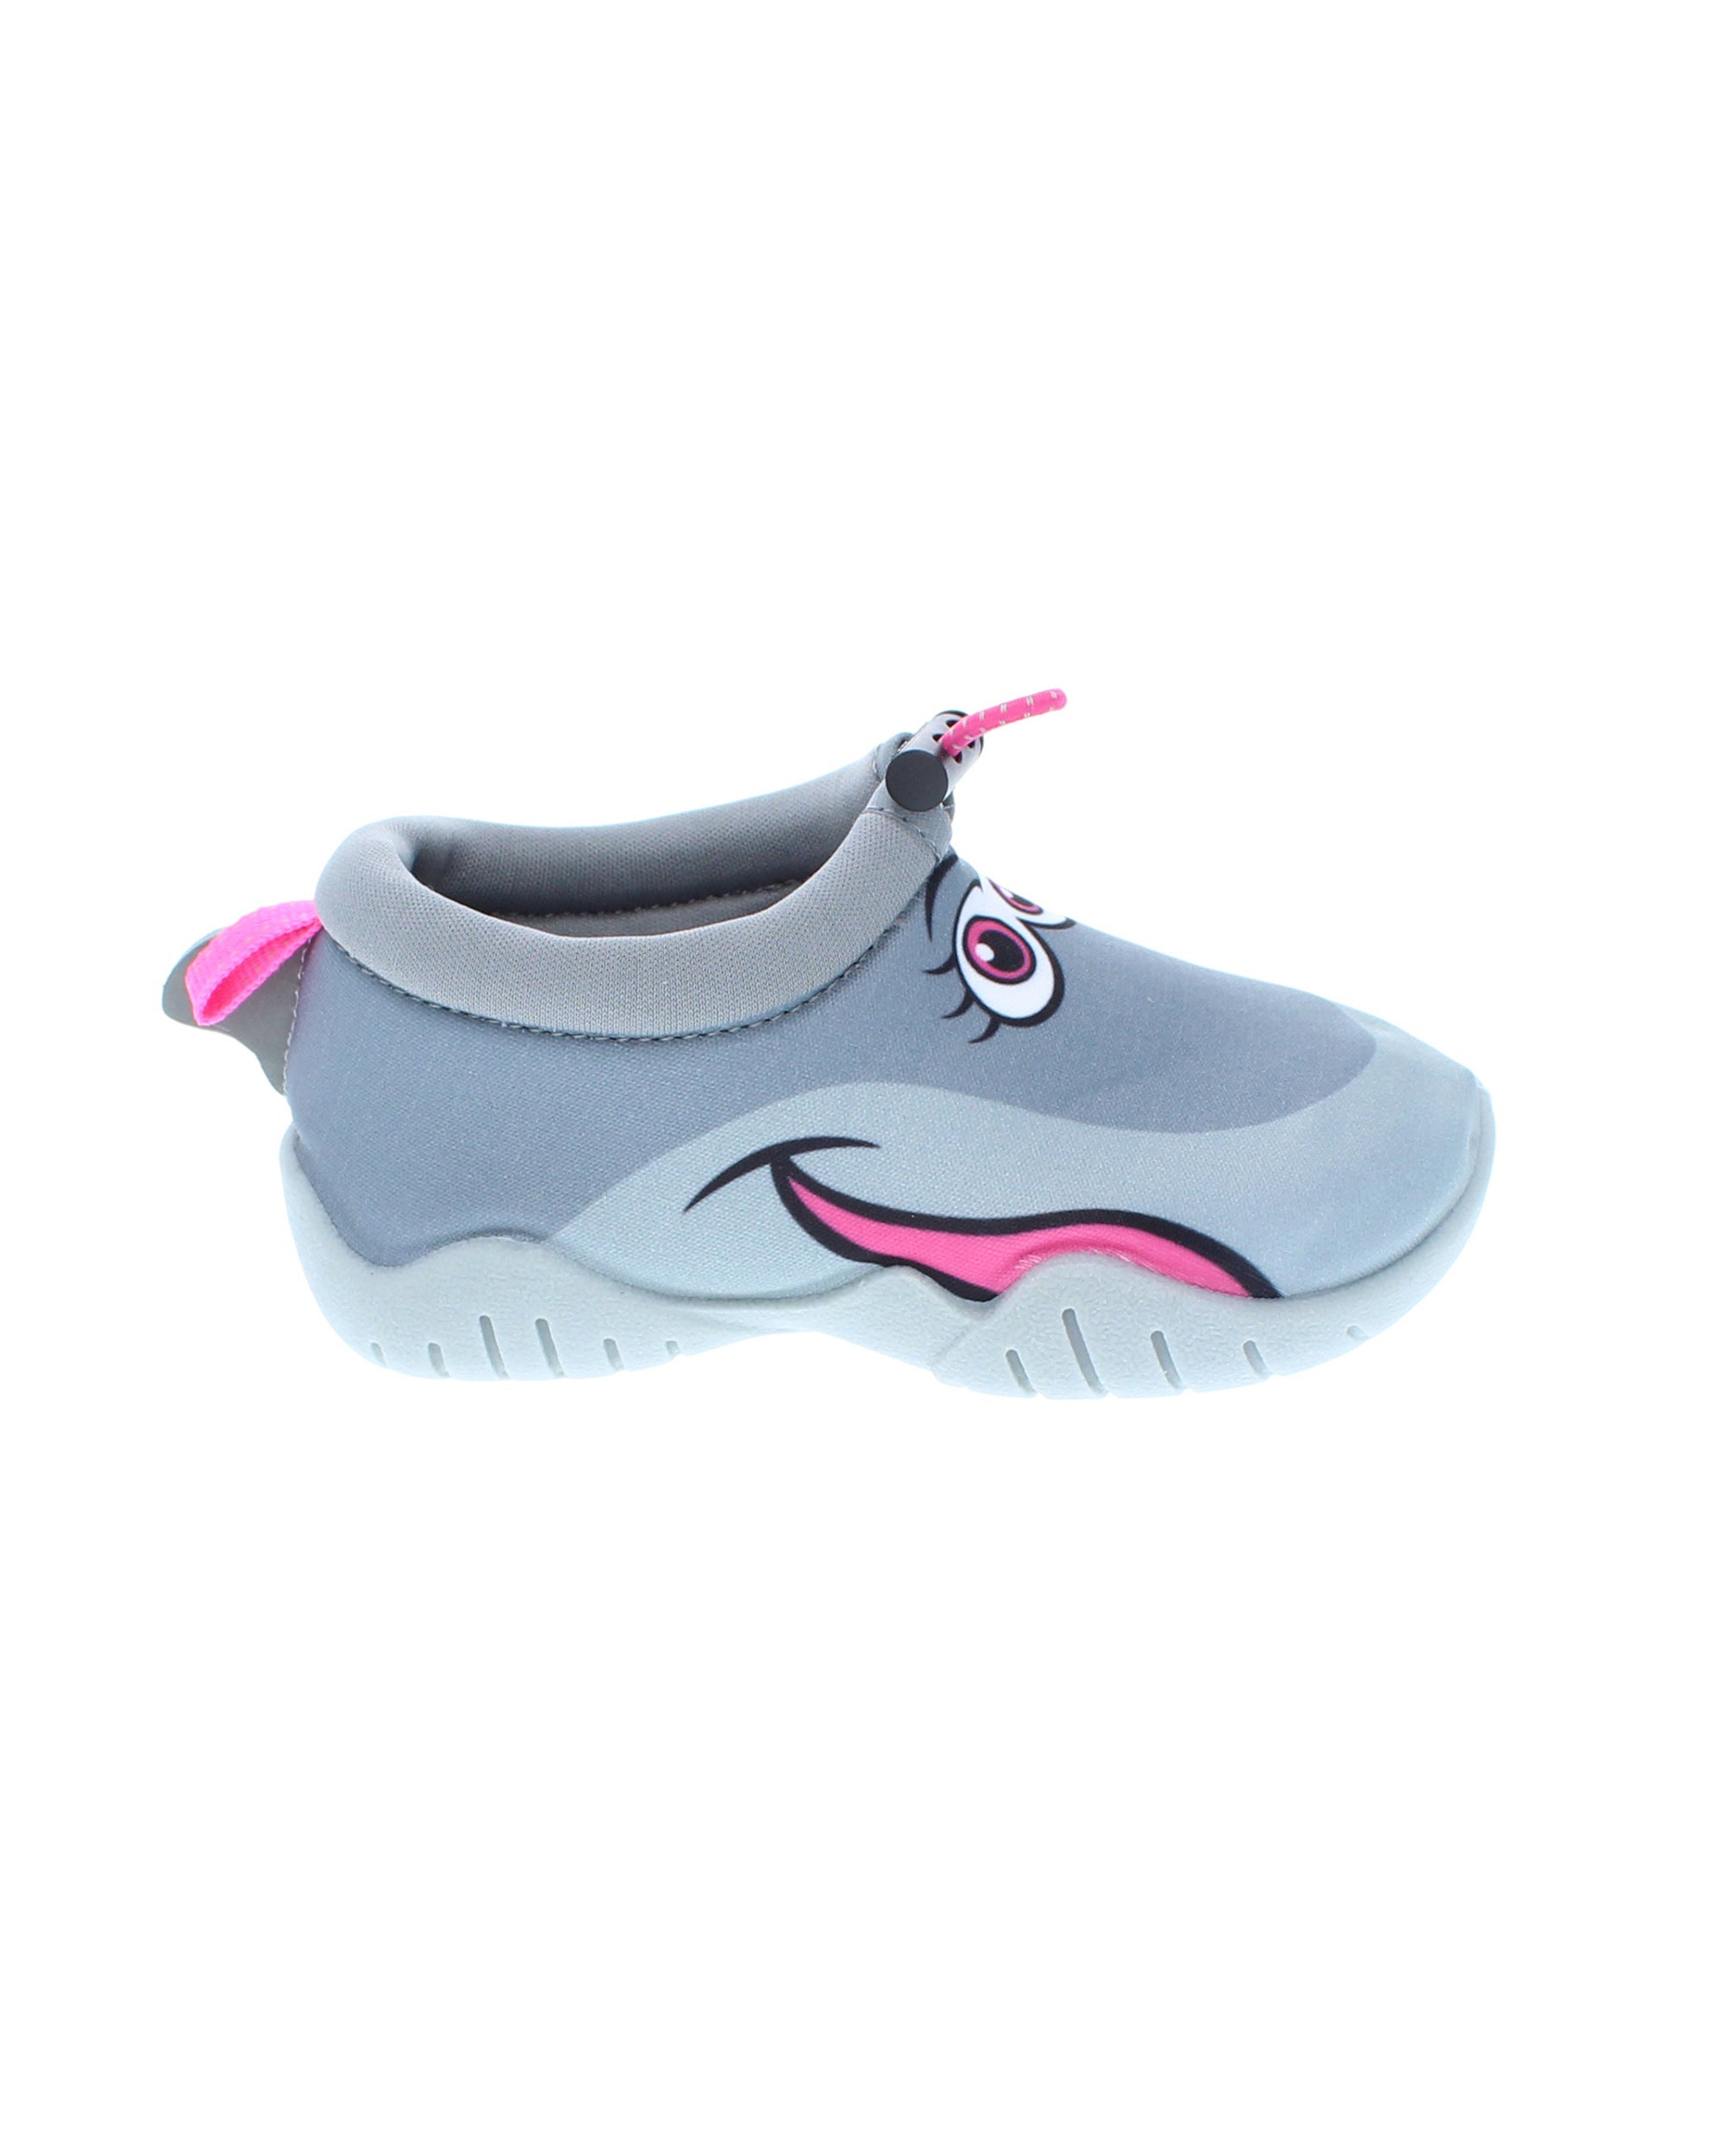 Kids' Sea Pals Water Shoes - Dolphin